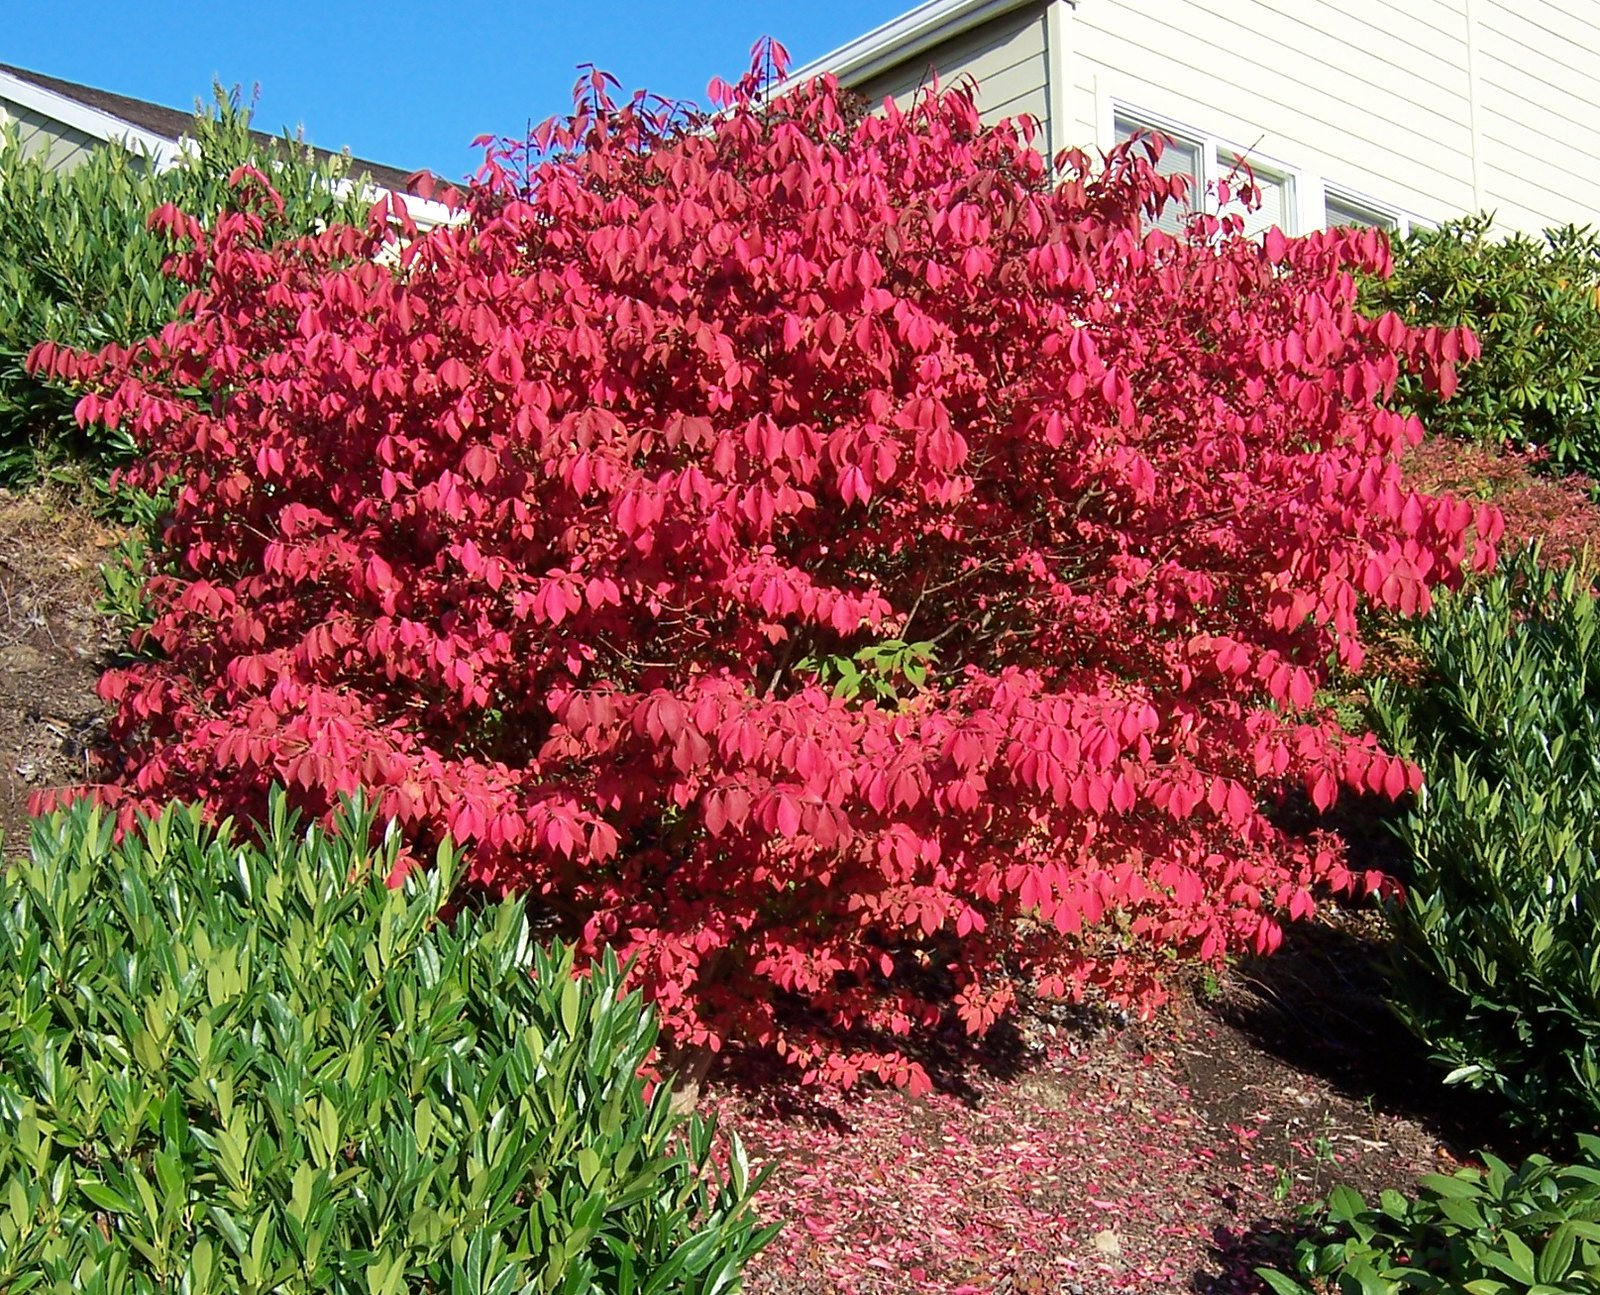 Saucy shrubs strut their stuff in fall